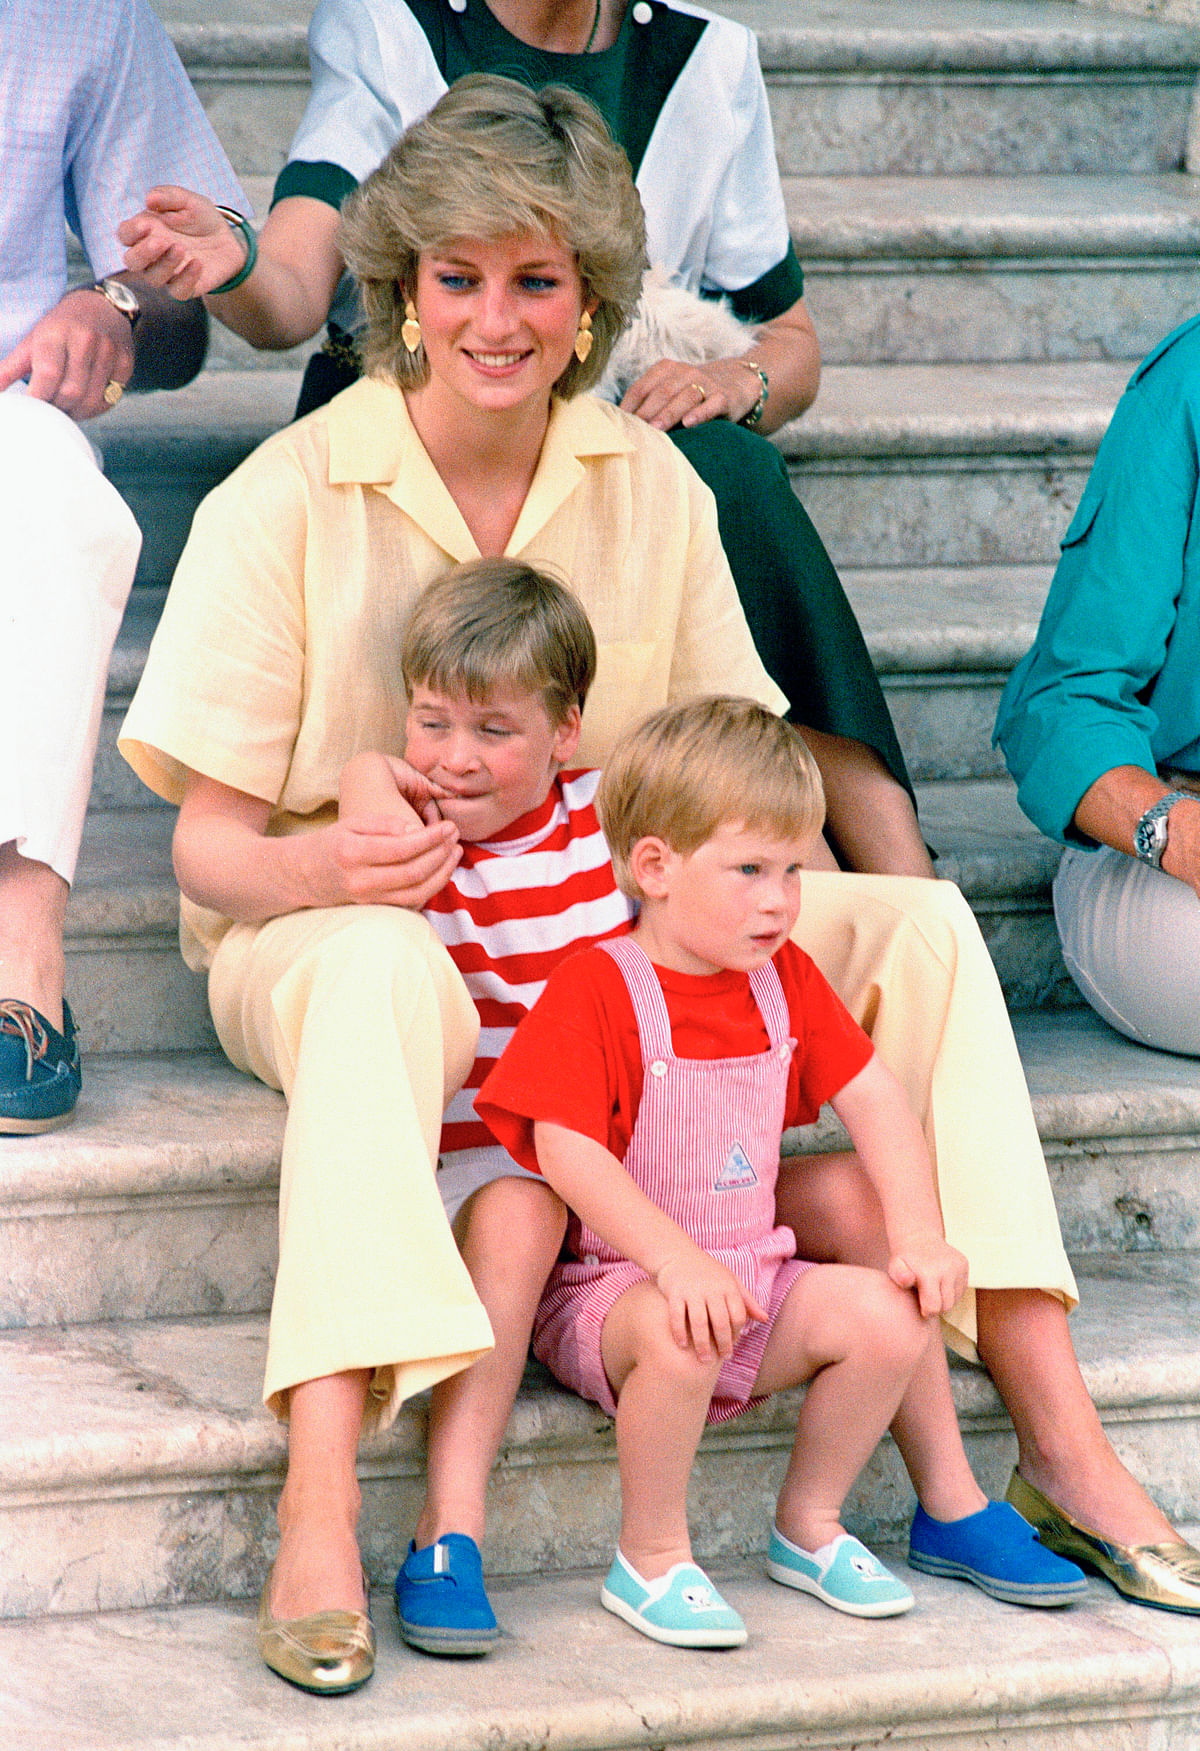 In this August 1987 photo, Britain's Princess Diana  smiles as she sits with her sons, Princes Harry (front) and William, on the steps of the Royal Palace on the island of Mallorca, Spain, where the British Royal family is on holiday with the Spanish King Juan Carlos and his family.